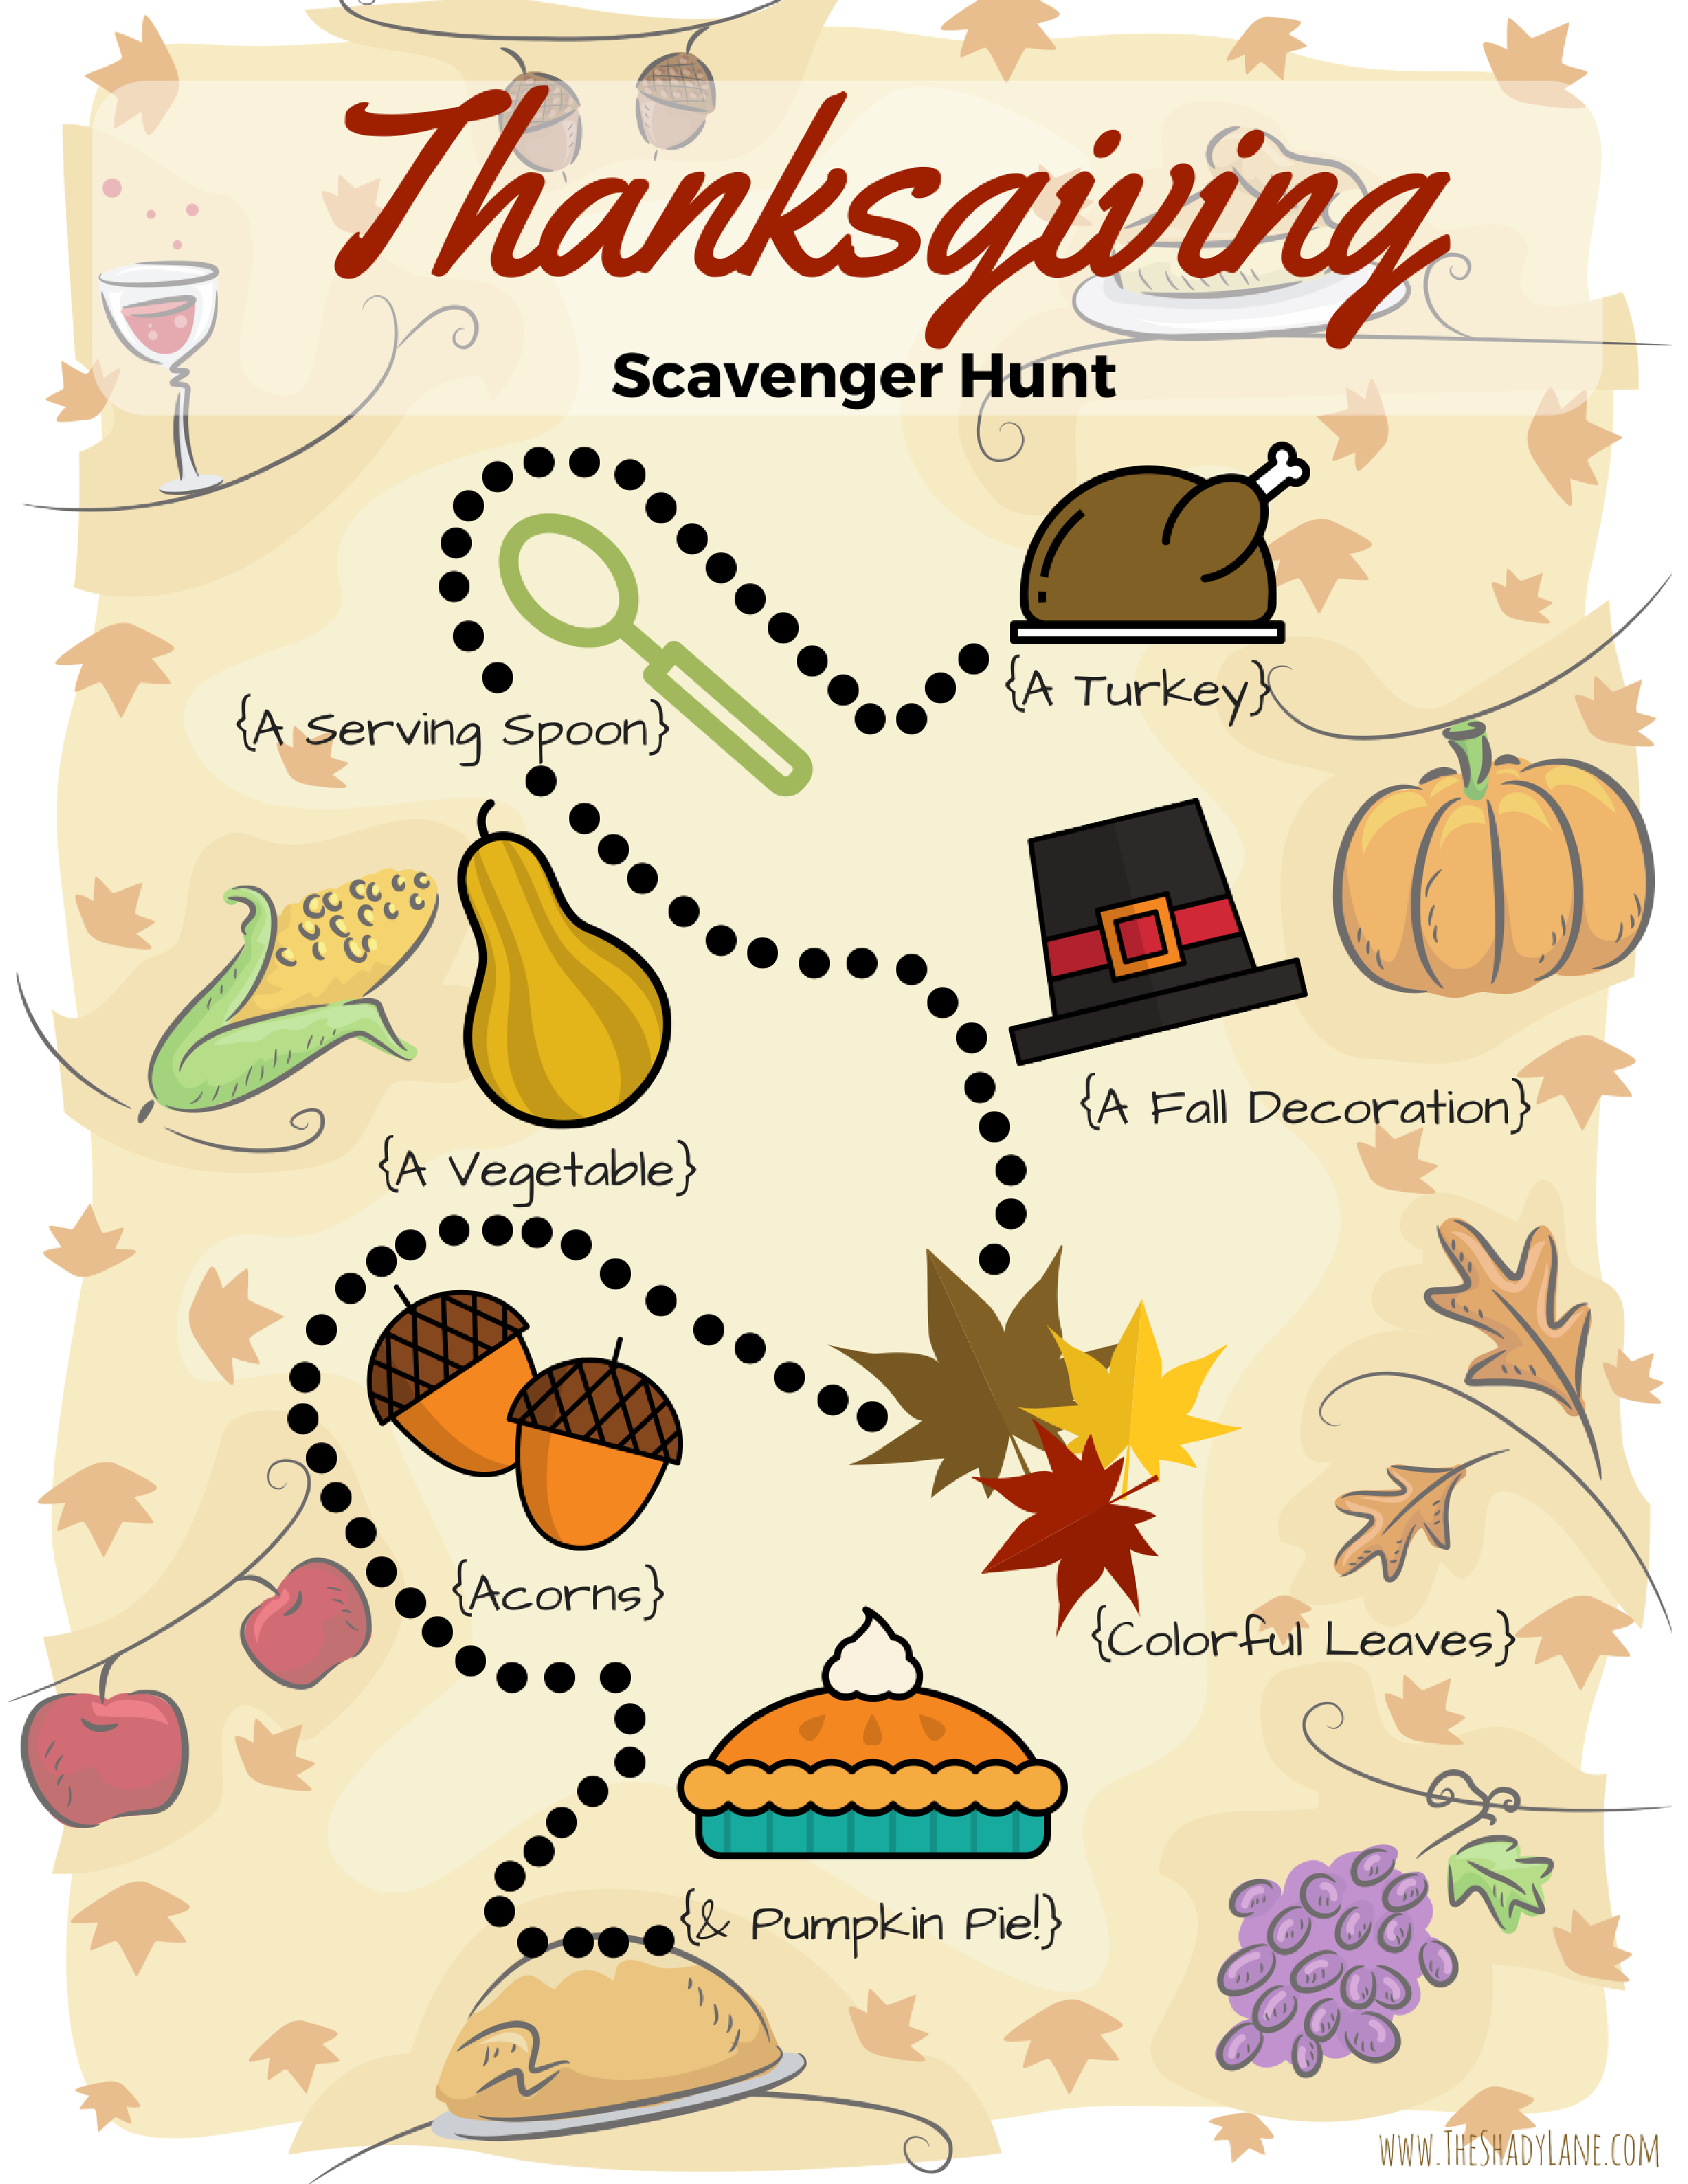 Thanksgiving Scavenger Hunt Free Printable